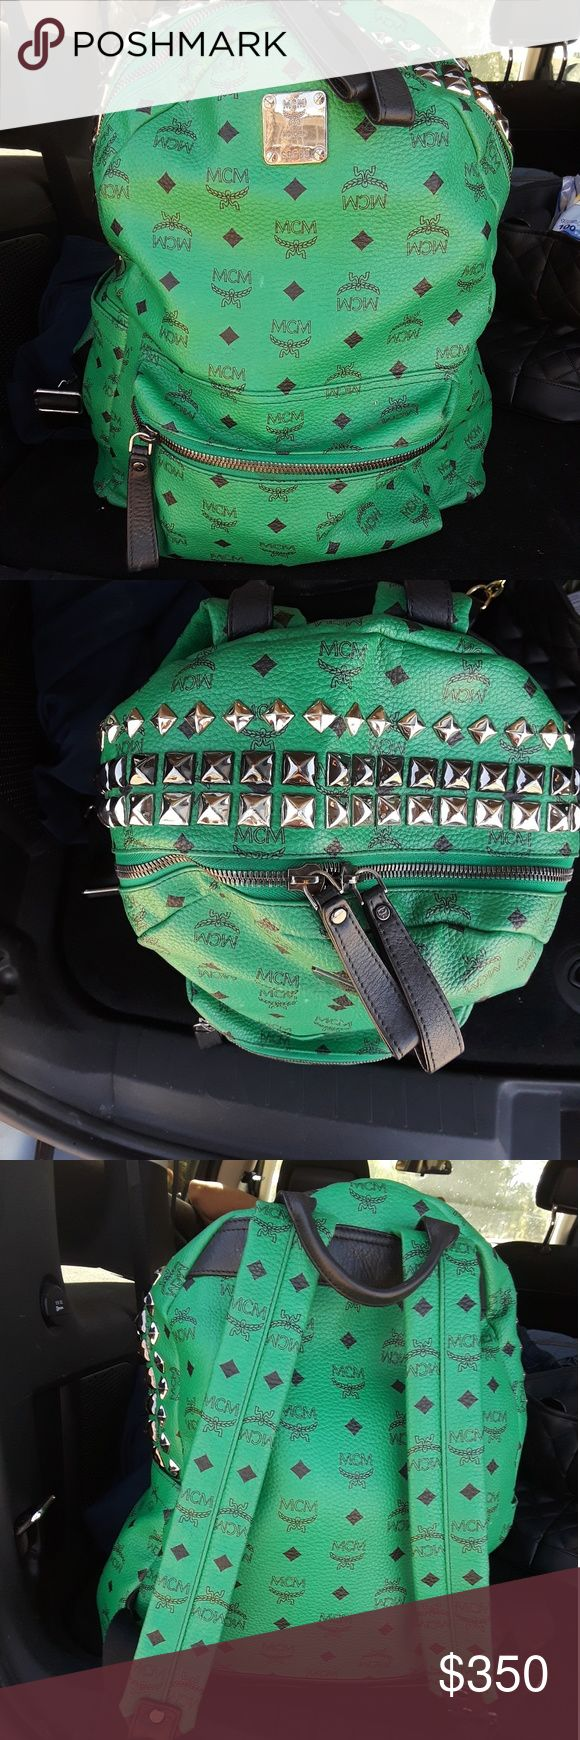 MCM back pack https://us.mcmworldwide.com/en/sale/backpacks?gclid=CjwKCAjwppPKBRAGEiwAh2G1mIjGcWAV4EgaGeqGDNDphREJ4oovIeH3cD1wxzWeB_UCRzkpHOm6pxoCNjQQAvD_BwE      Selling a green authentic all leather MCM backpack best offer I really need the money so I'm going to sell it really cheap There's the link so you could see how much these backpacks are worth if you are interested please let me know as soon as possible MCM Bags Backpacks